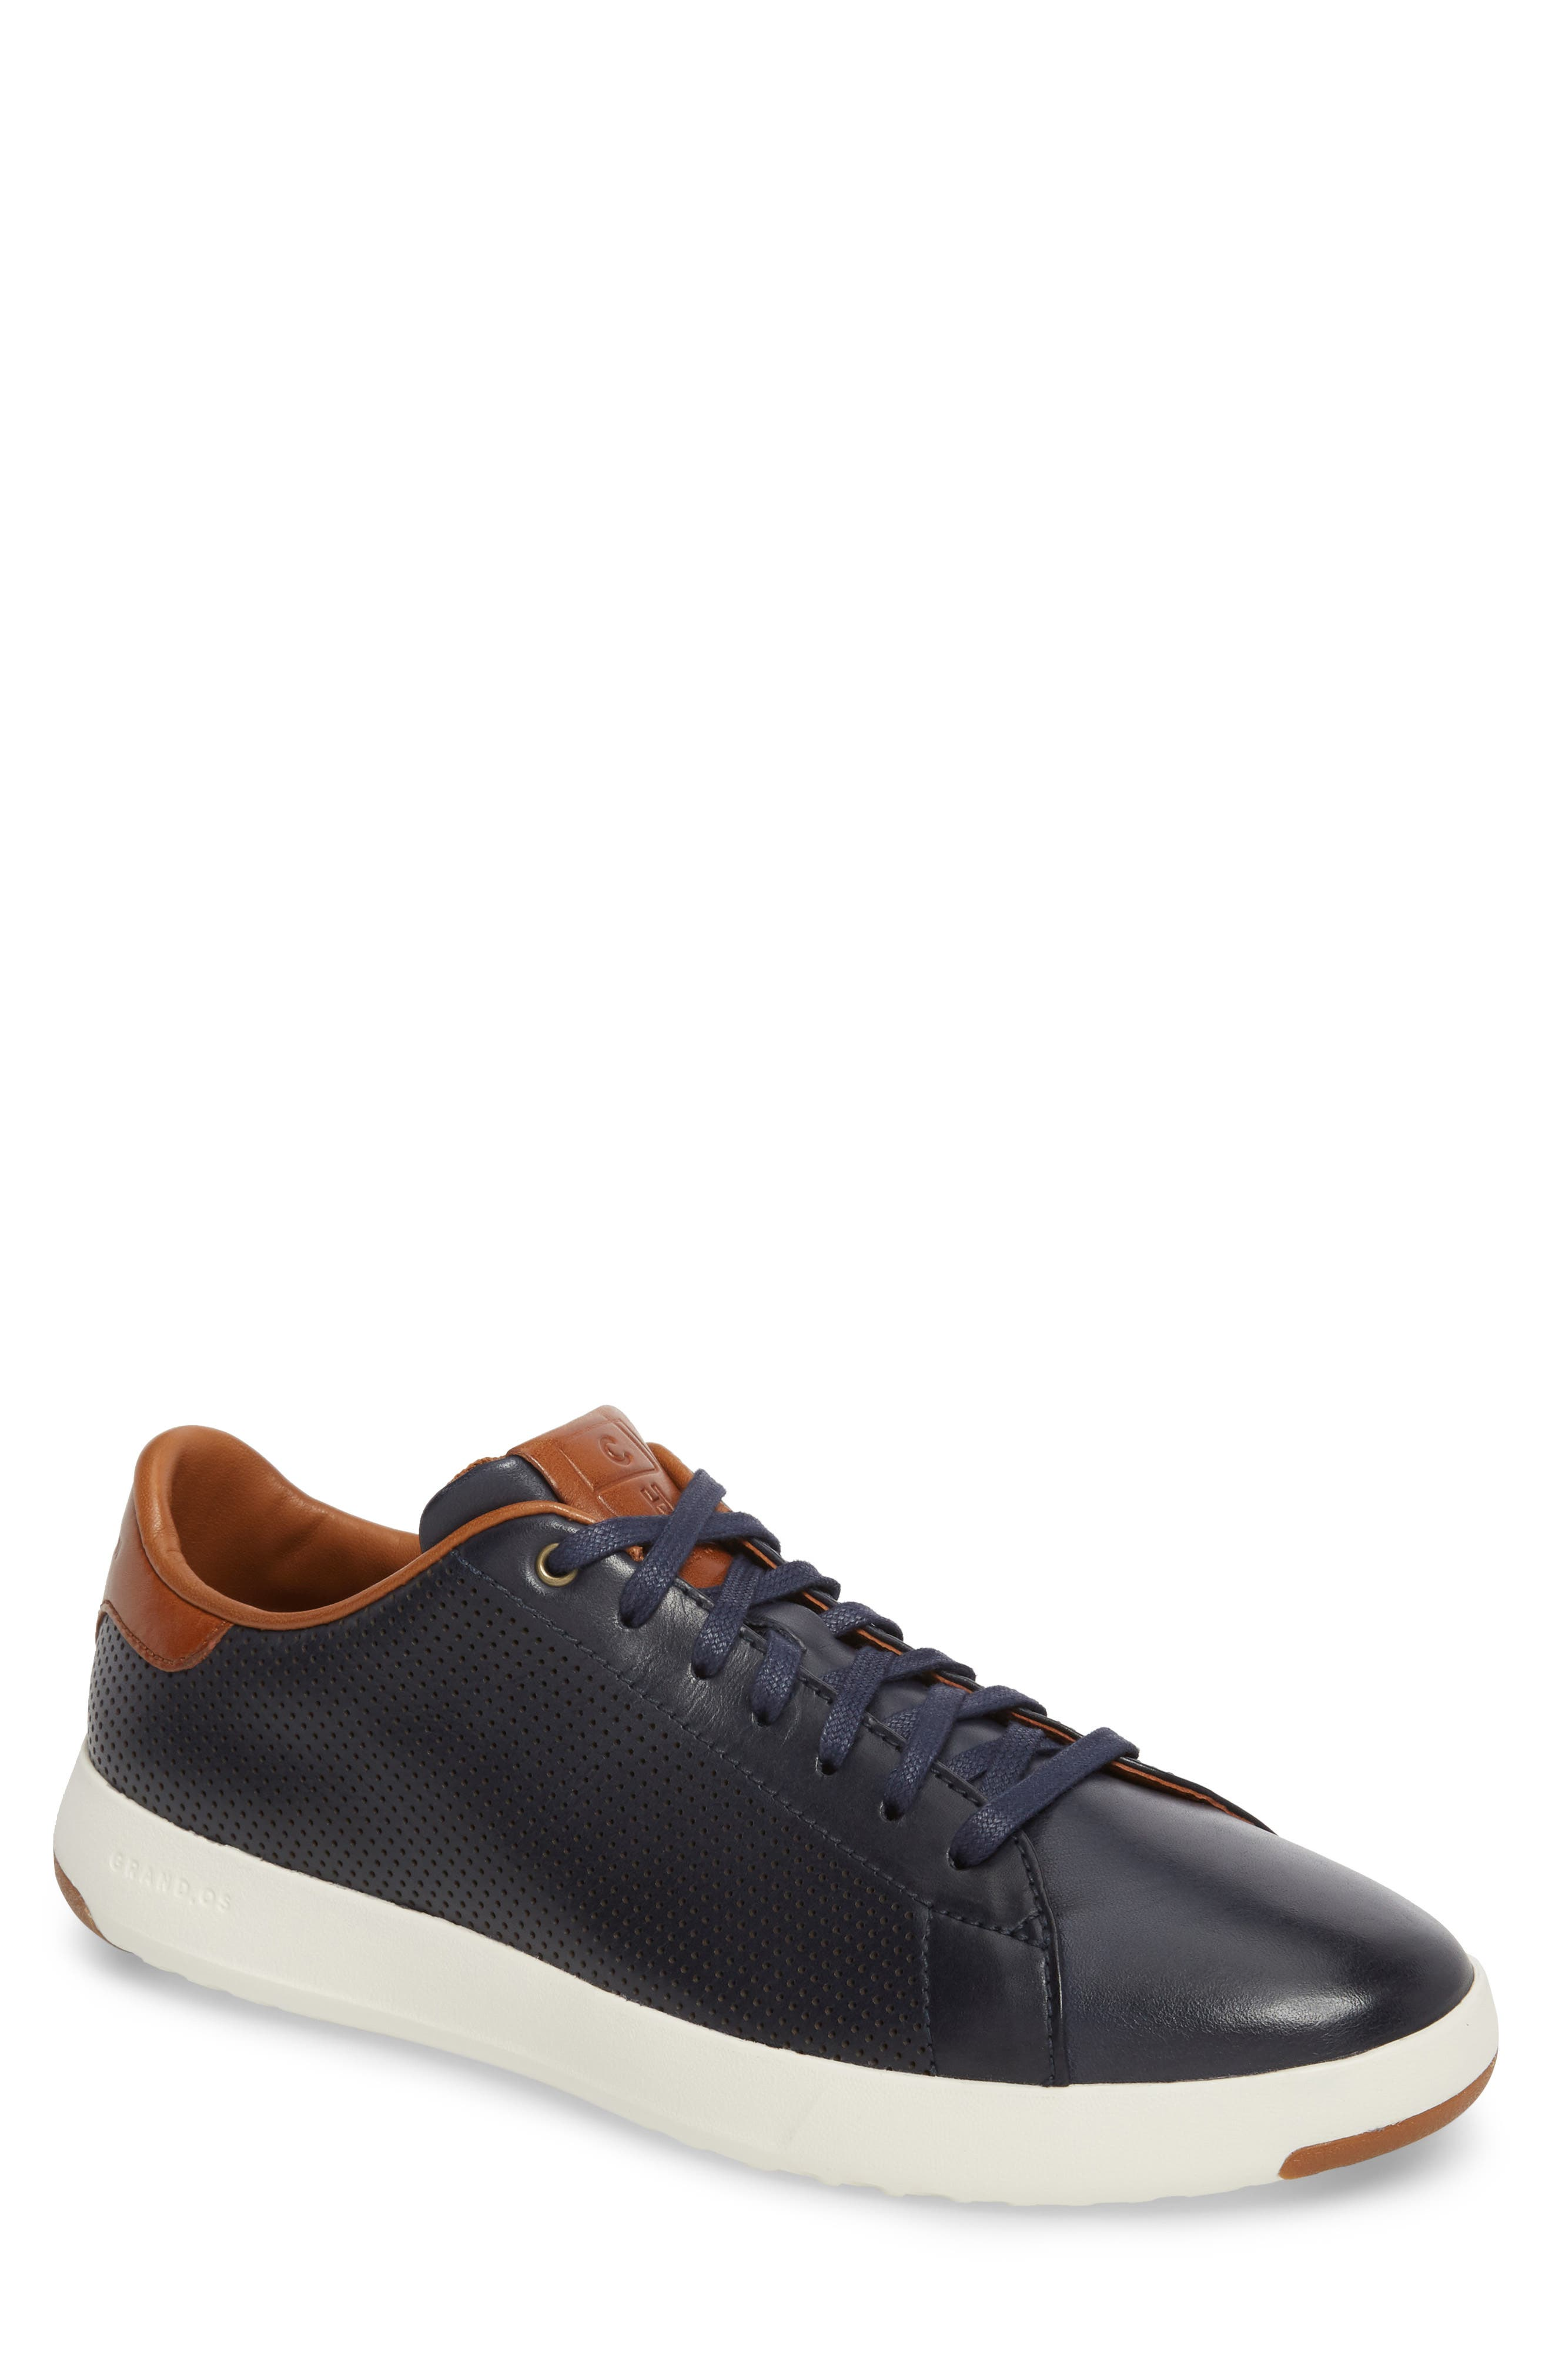 Cole Haan GrandPrø Perforated Low Top